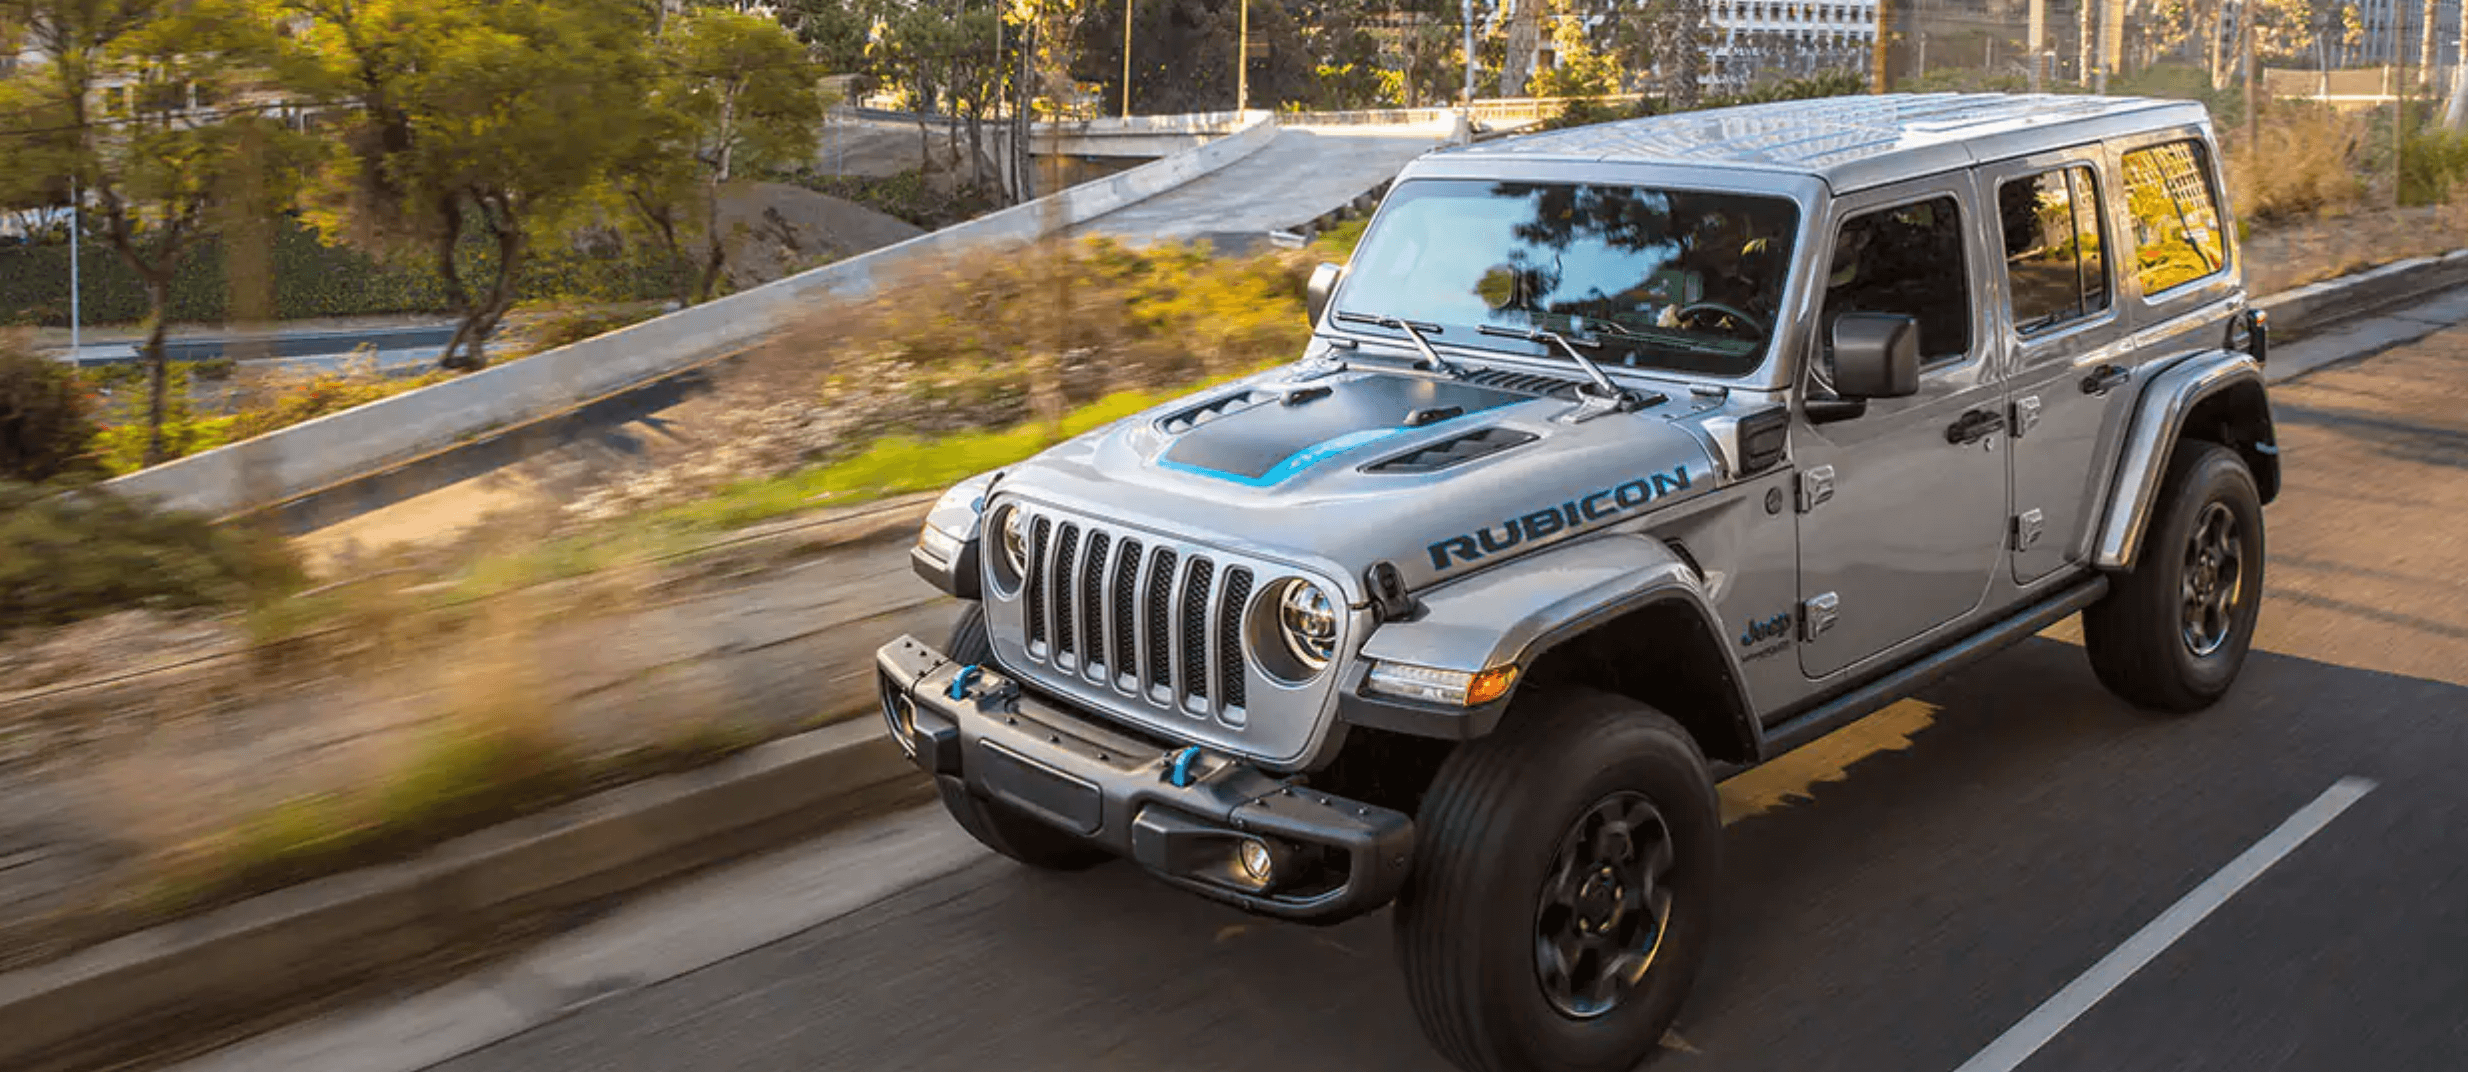 The new 2021 Jeep Wrangler 4XE driving in Bismarck